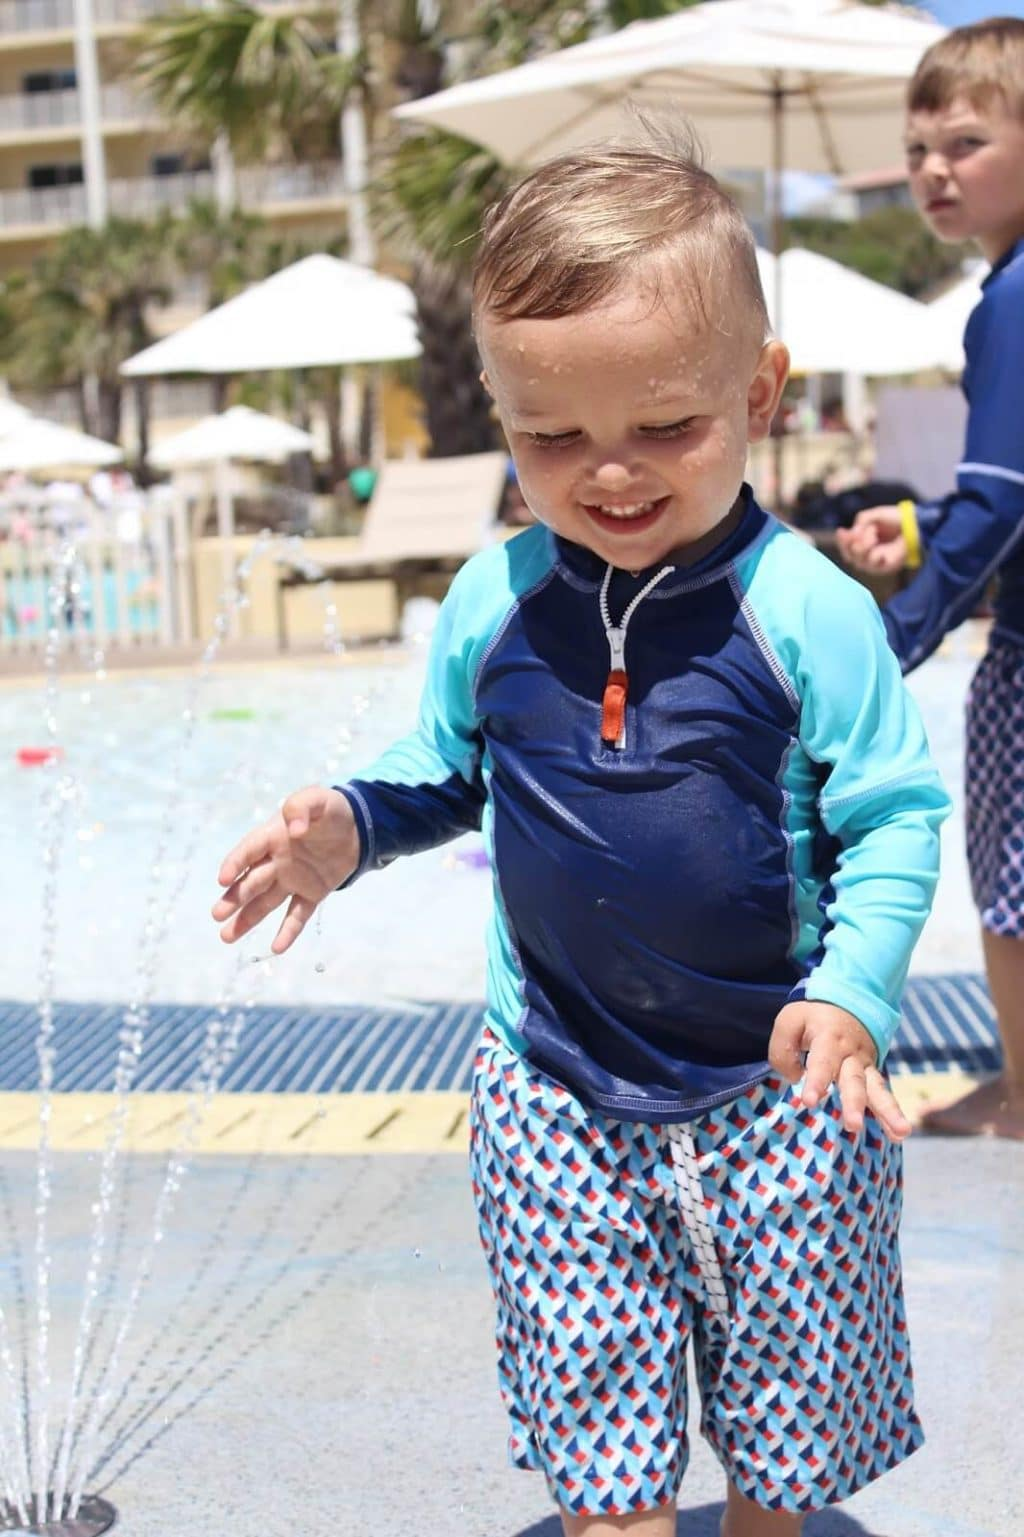 Omni Amelia Island Plantation Splash Pad, Stilettos and Diapers